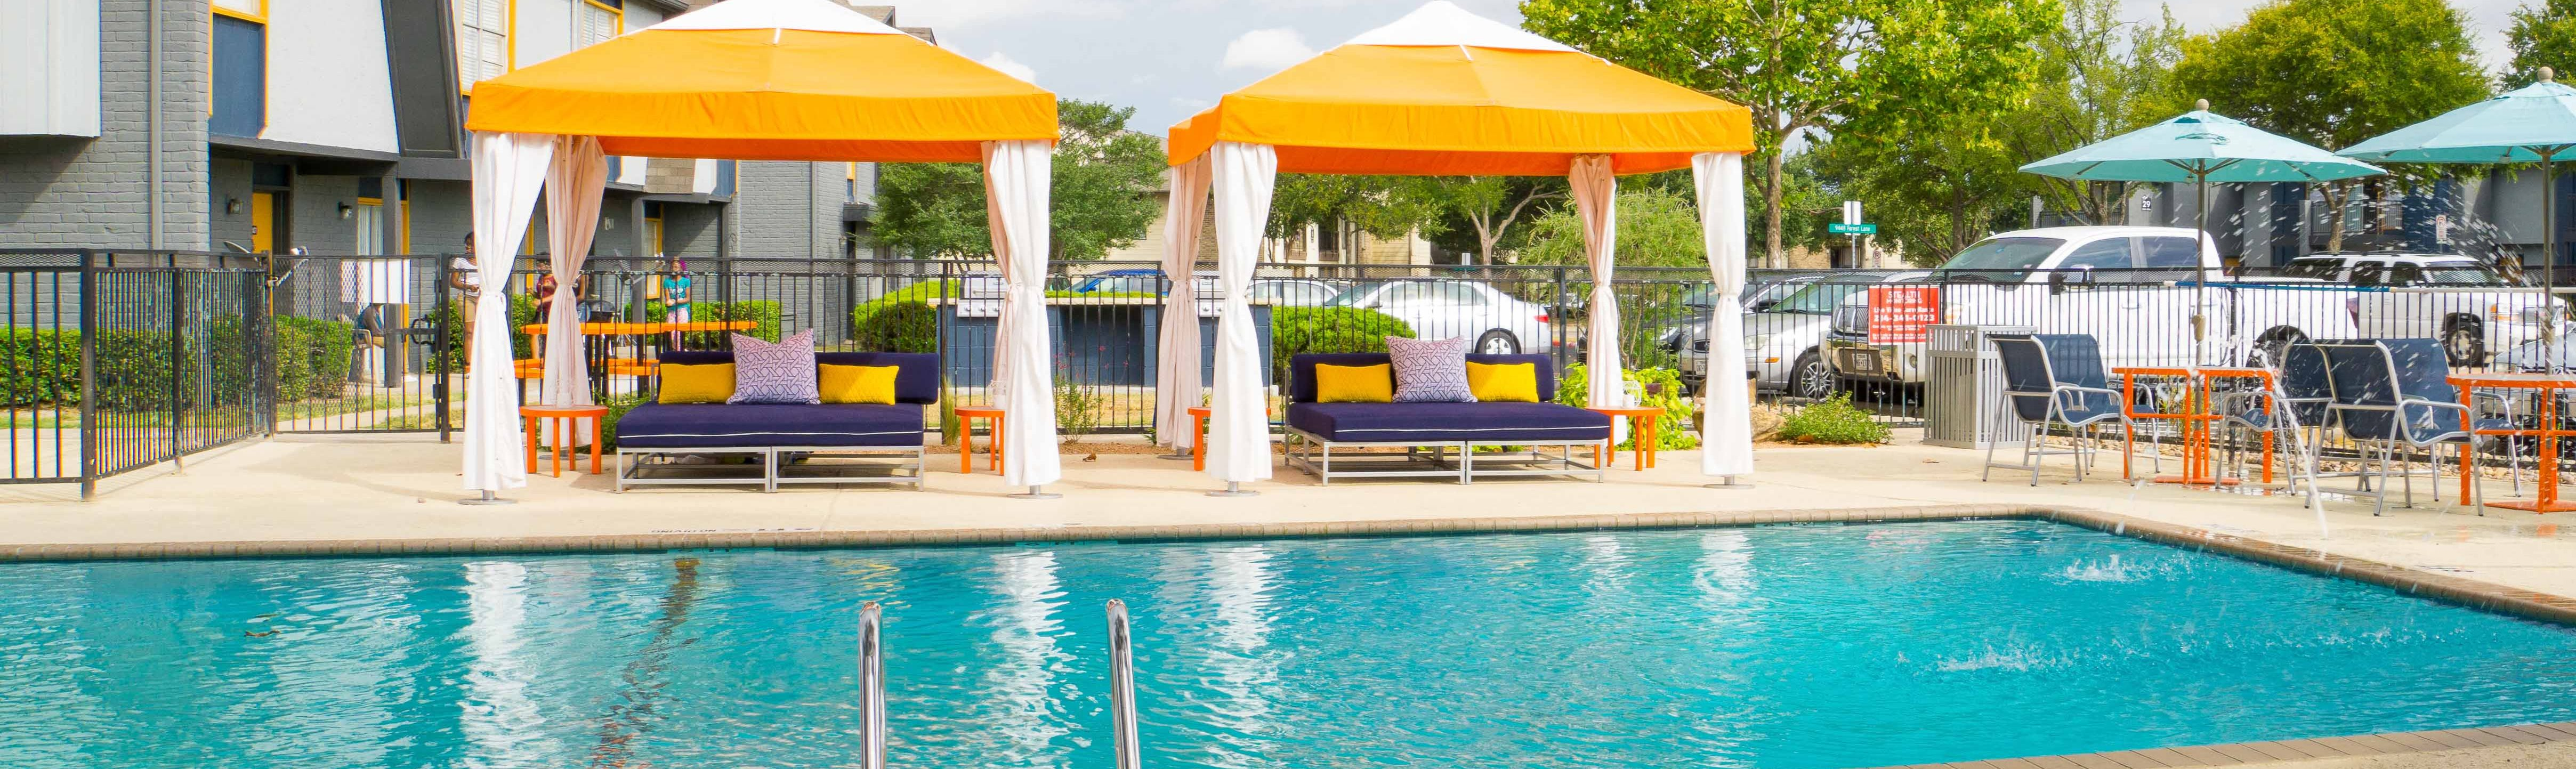 Picturesque Pool And Cabana Setting at Link Apartments, Dallas, TX, 75243